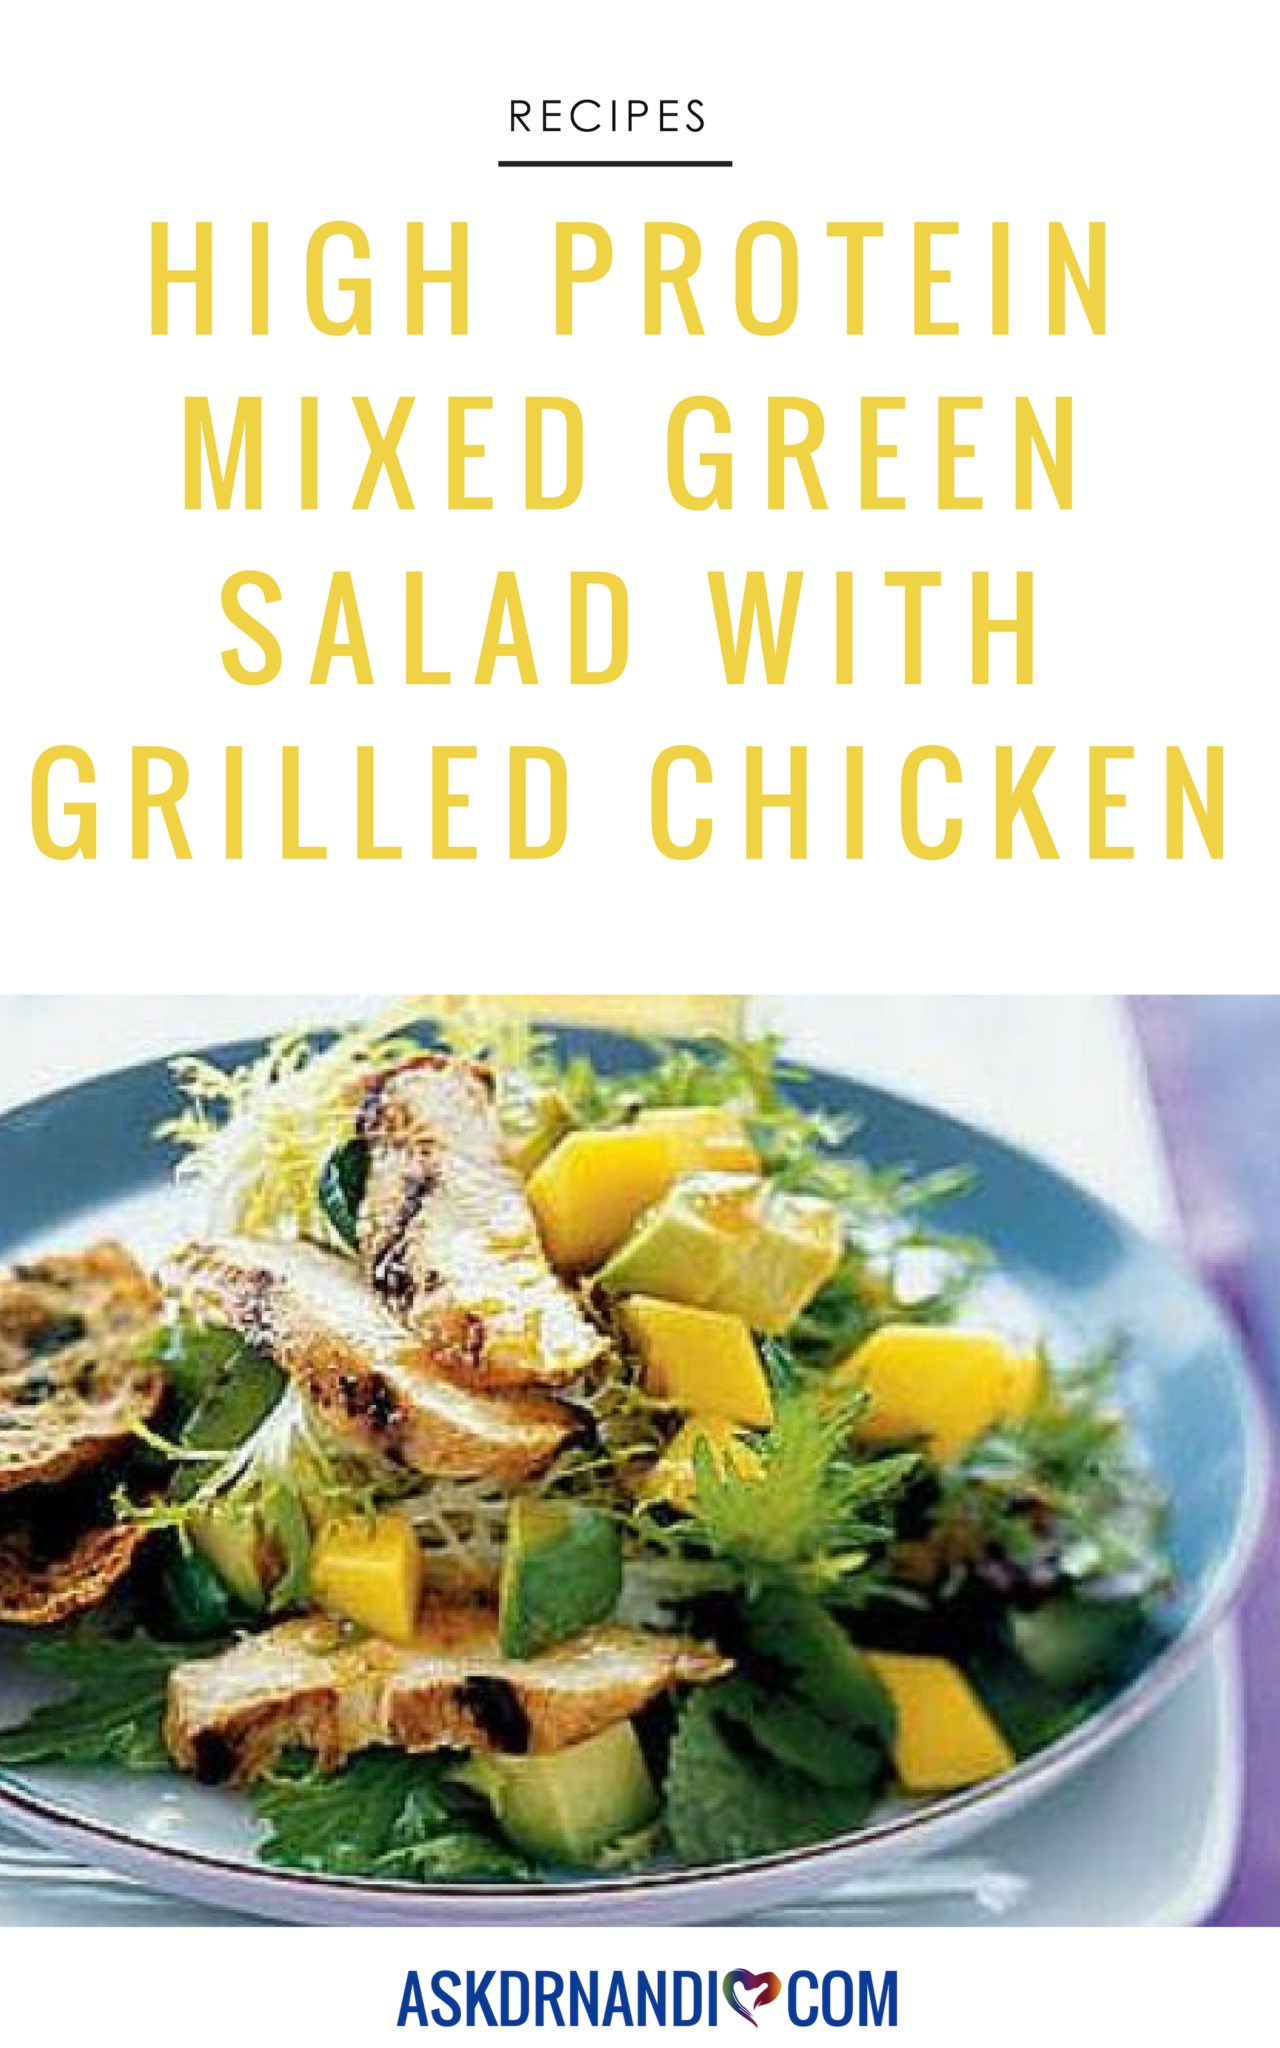 This quick and easy Mixed Green Salad with Grilled Chicken is packed with protein!